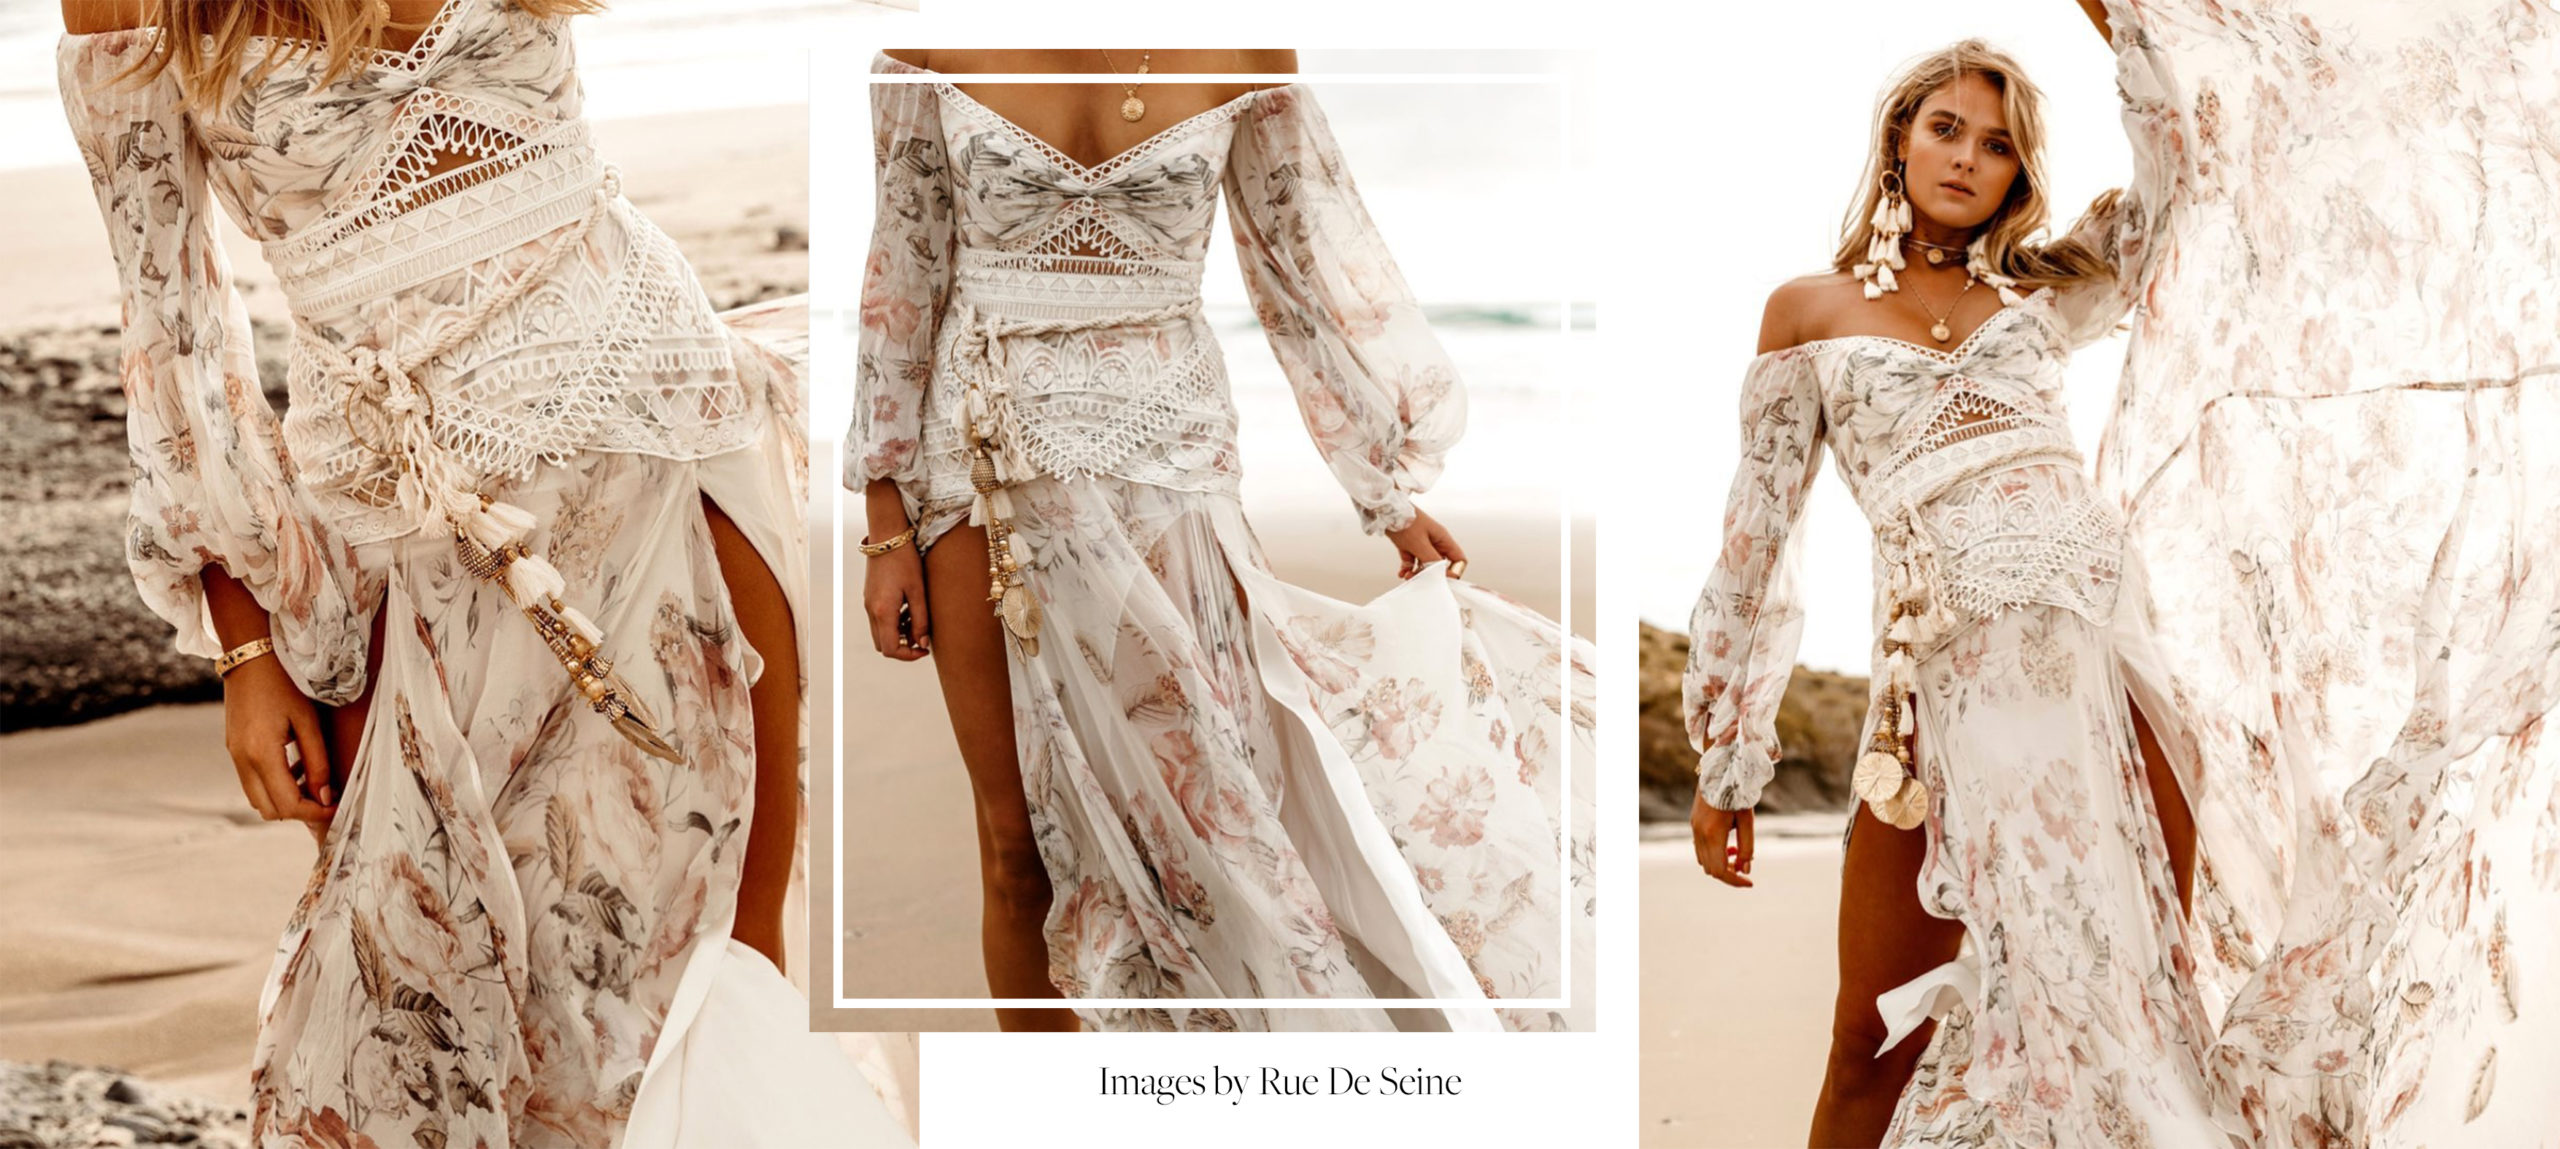 The Best Boho Wedding Dresses For The Bohemian Bride One Fine Day